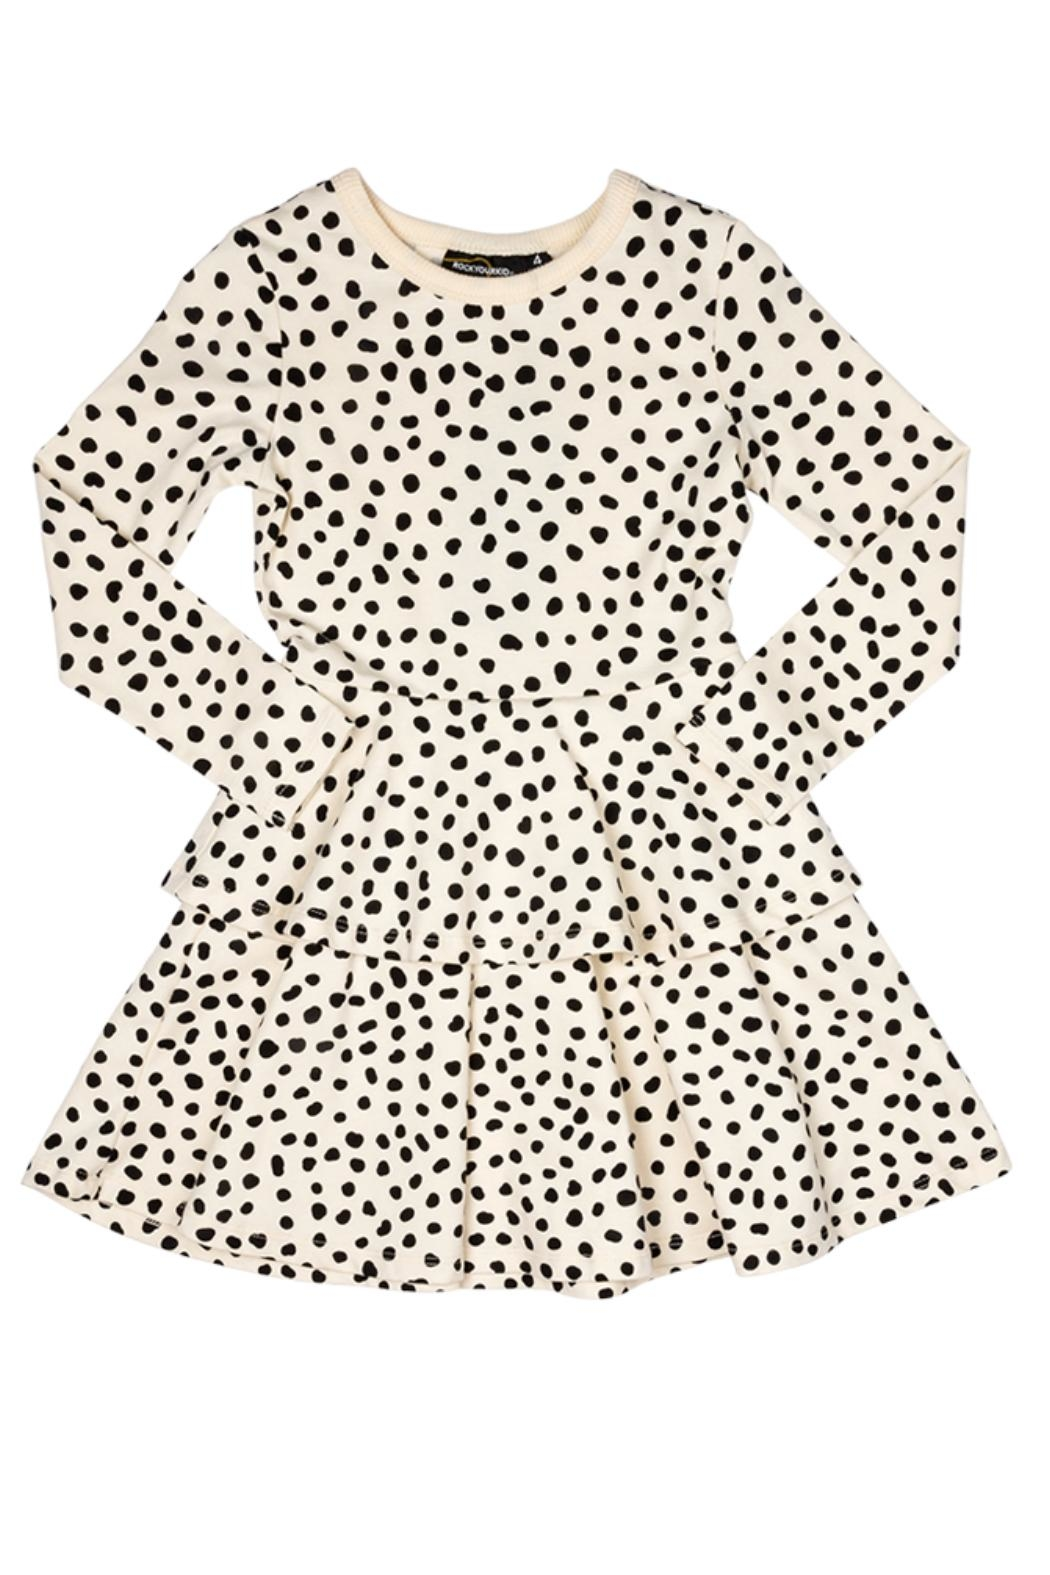 Rock Your Baby Spot On Dress - Main Image